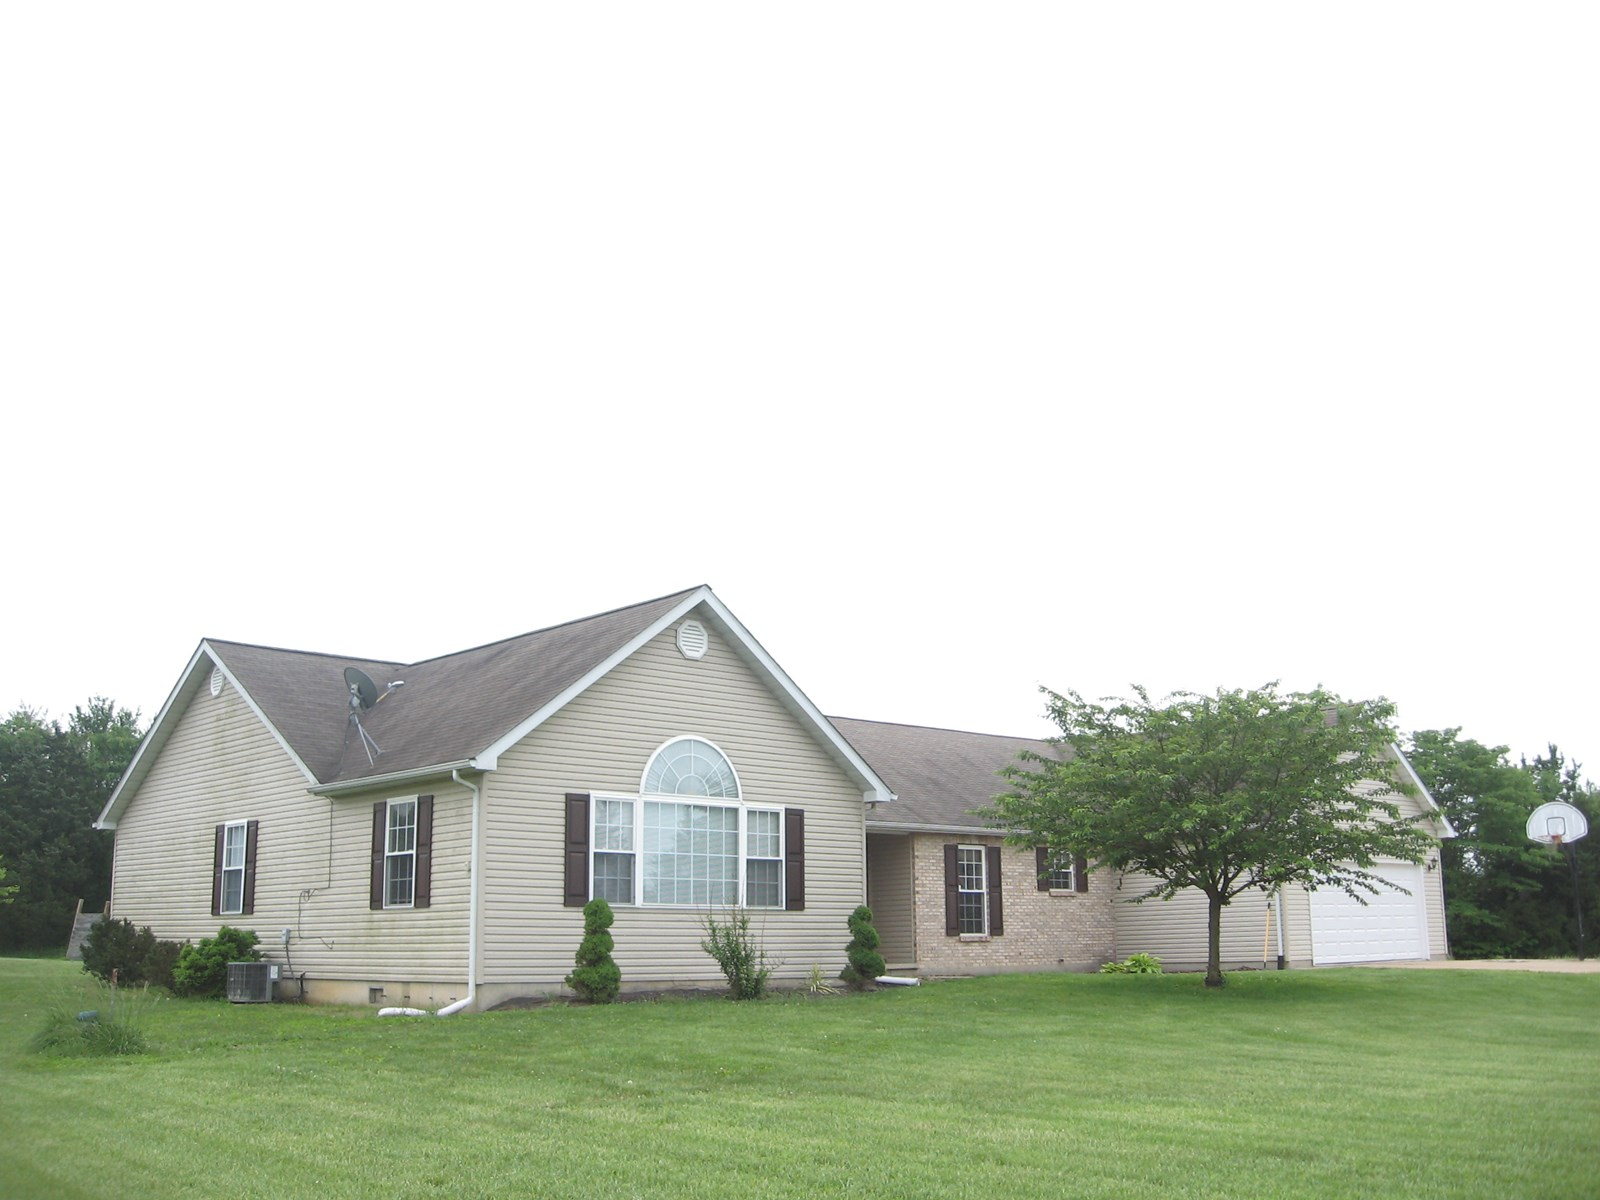 4-BR,2-BA COUNTRY HOME IN FARMINGTON SCHOOL DISTRICT